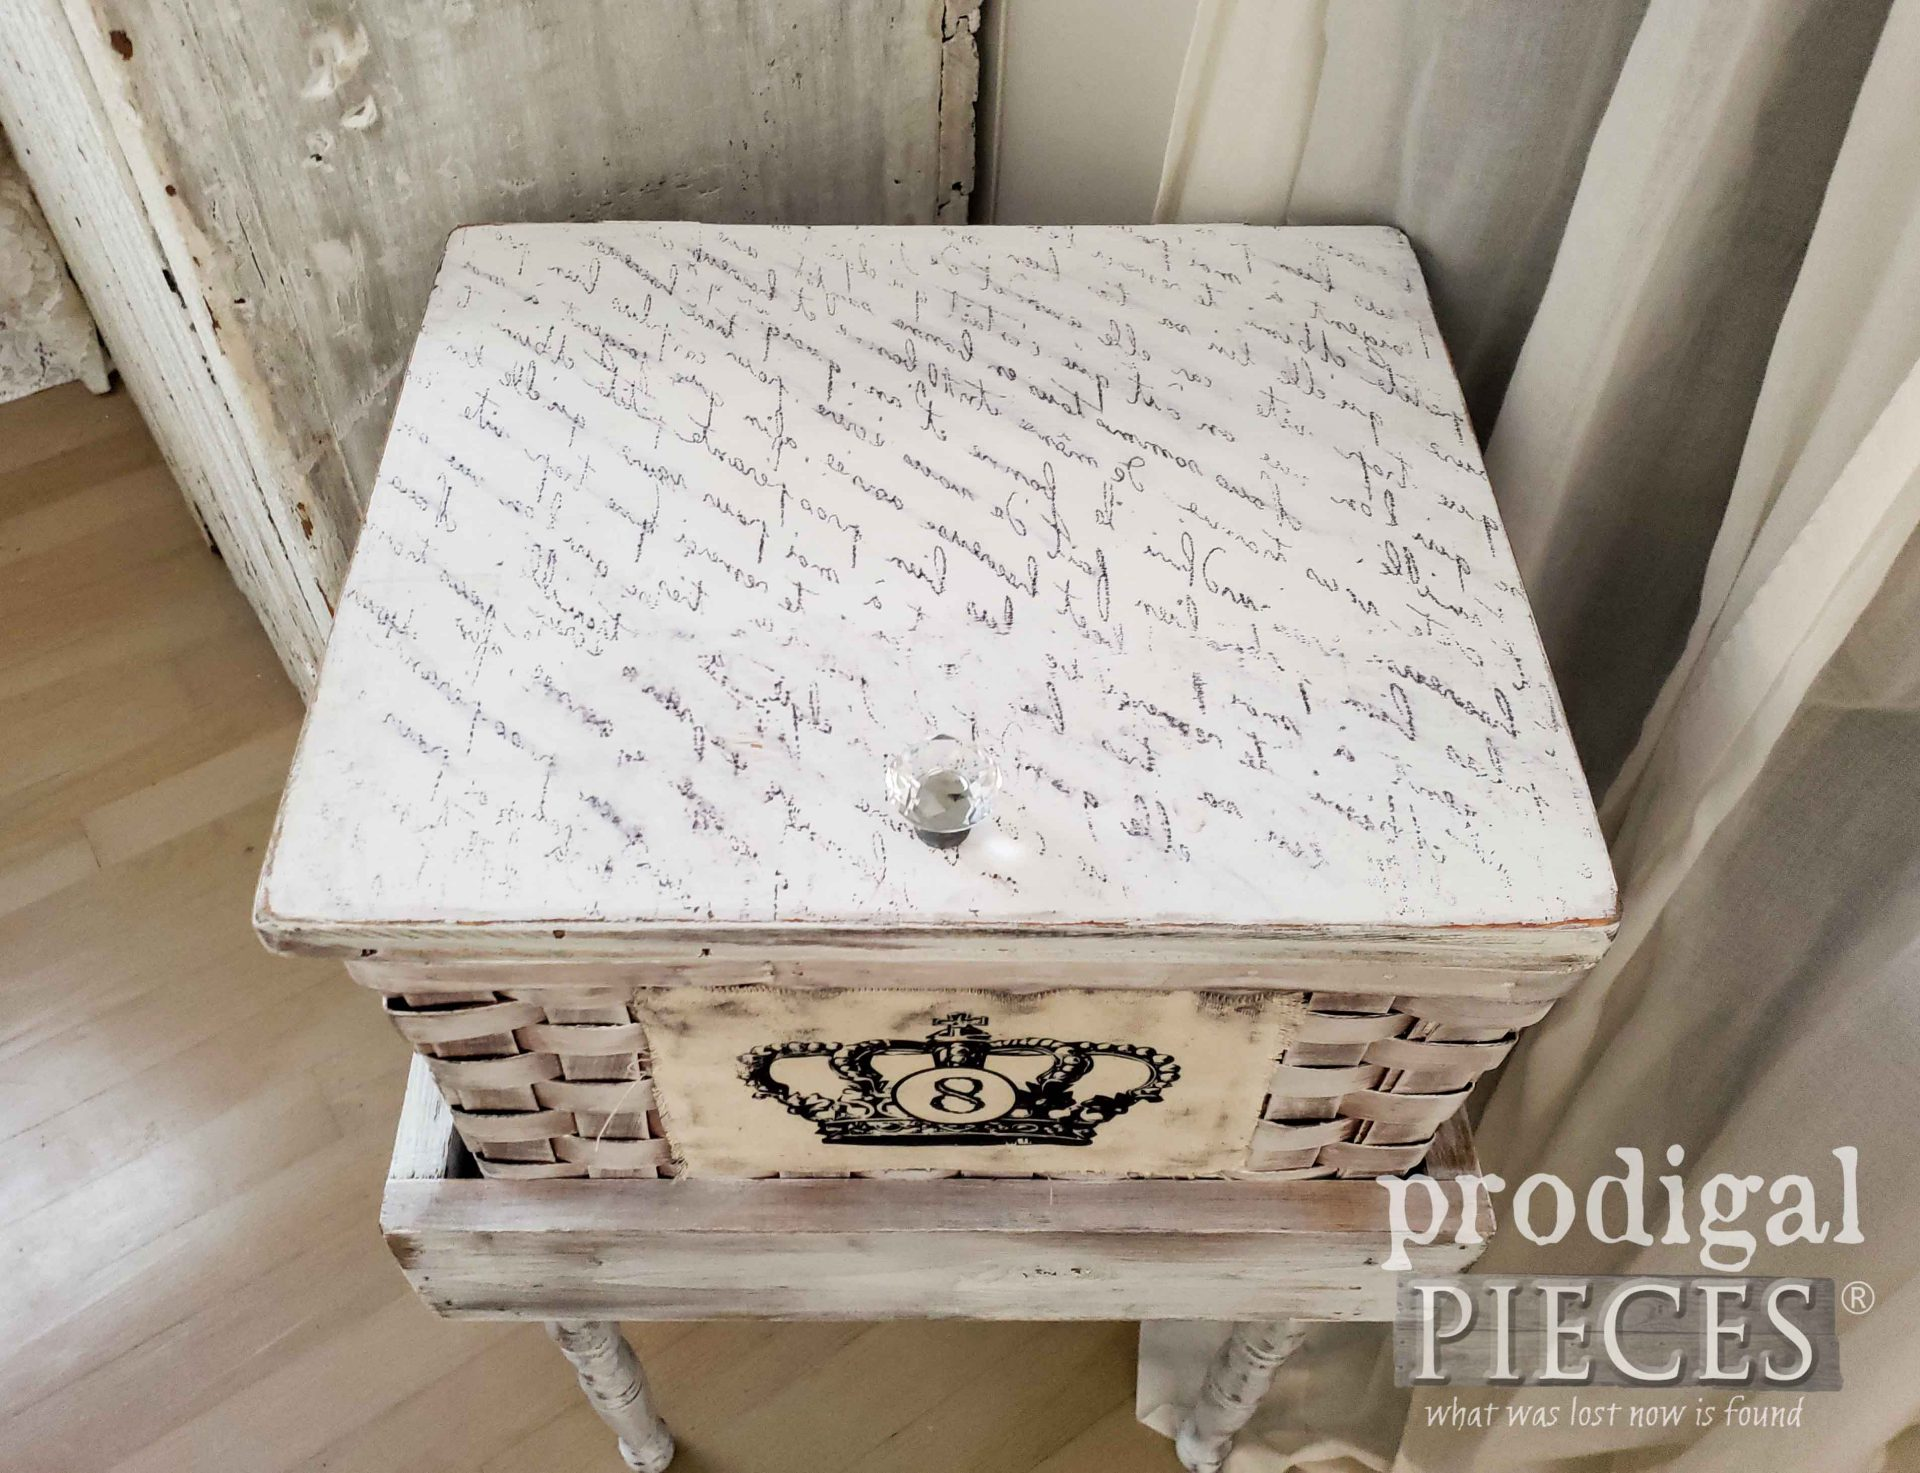 French Basket Table Top Handmade by Larissa of Prodigal Pieces | prodigalpieces.com #prodigalpieces #diy #home #furniture #farmhouse #homedecor